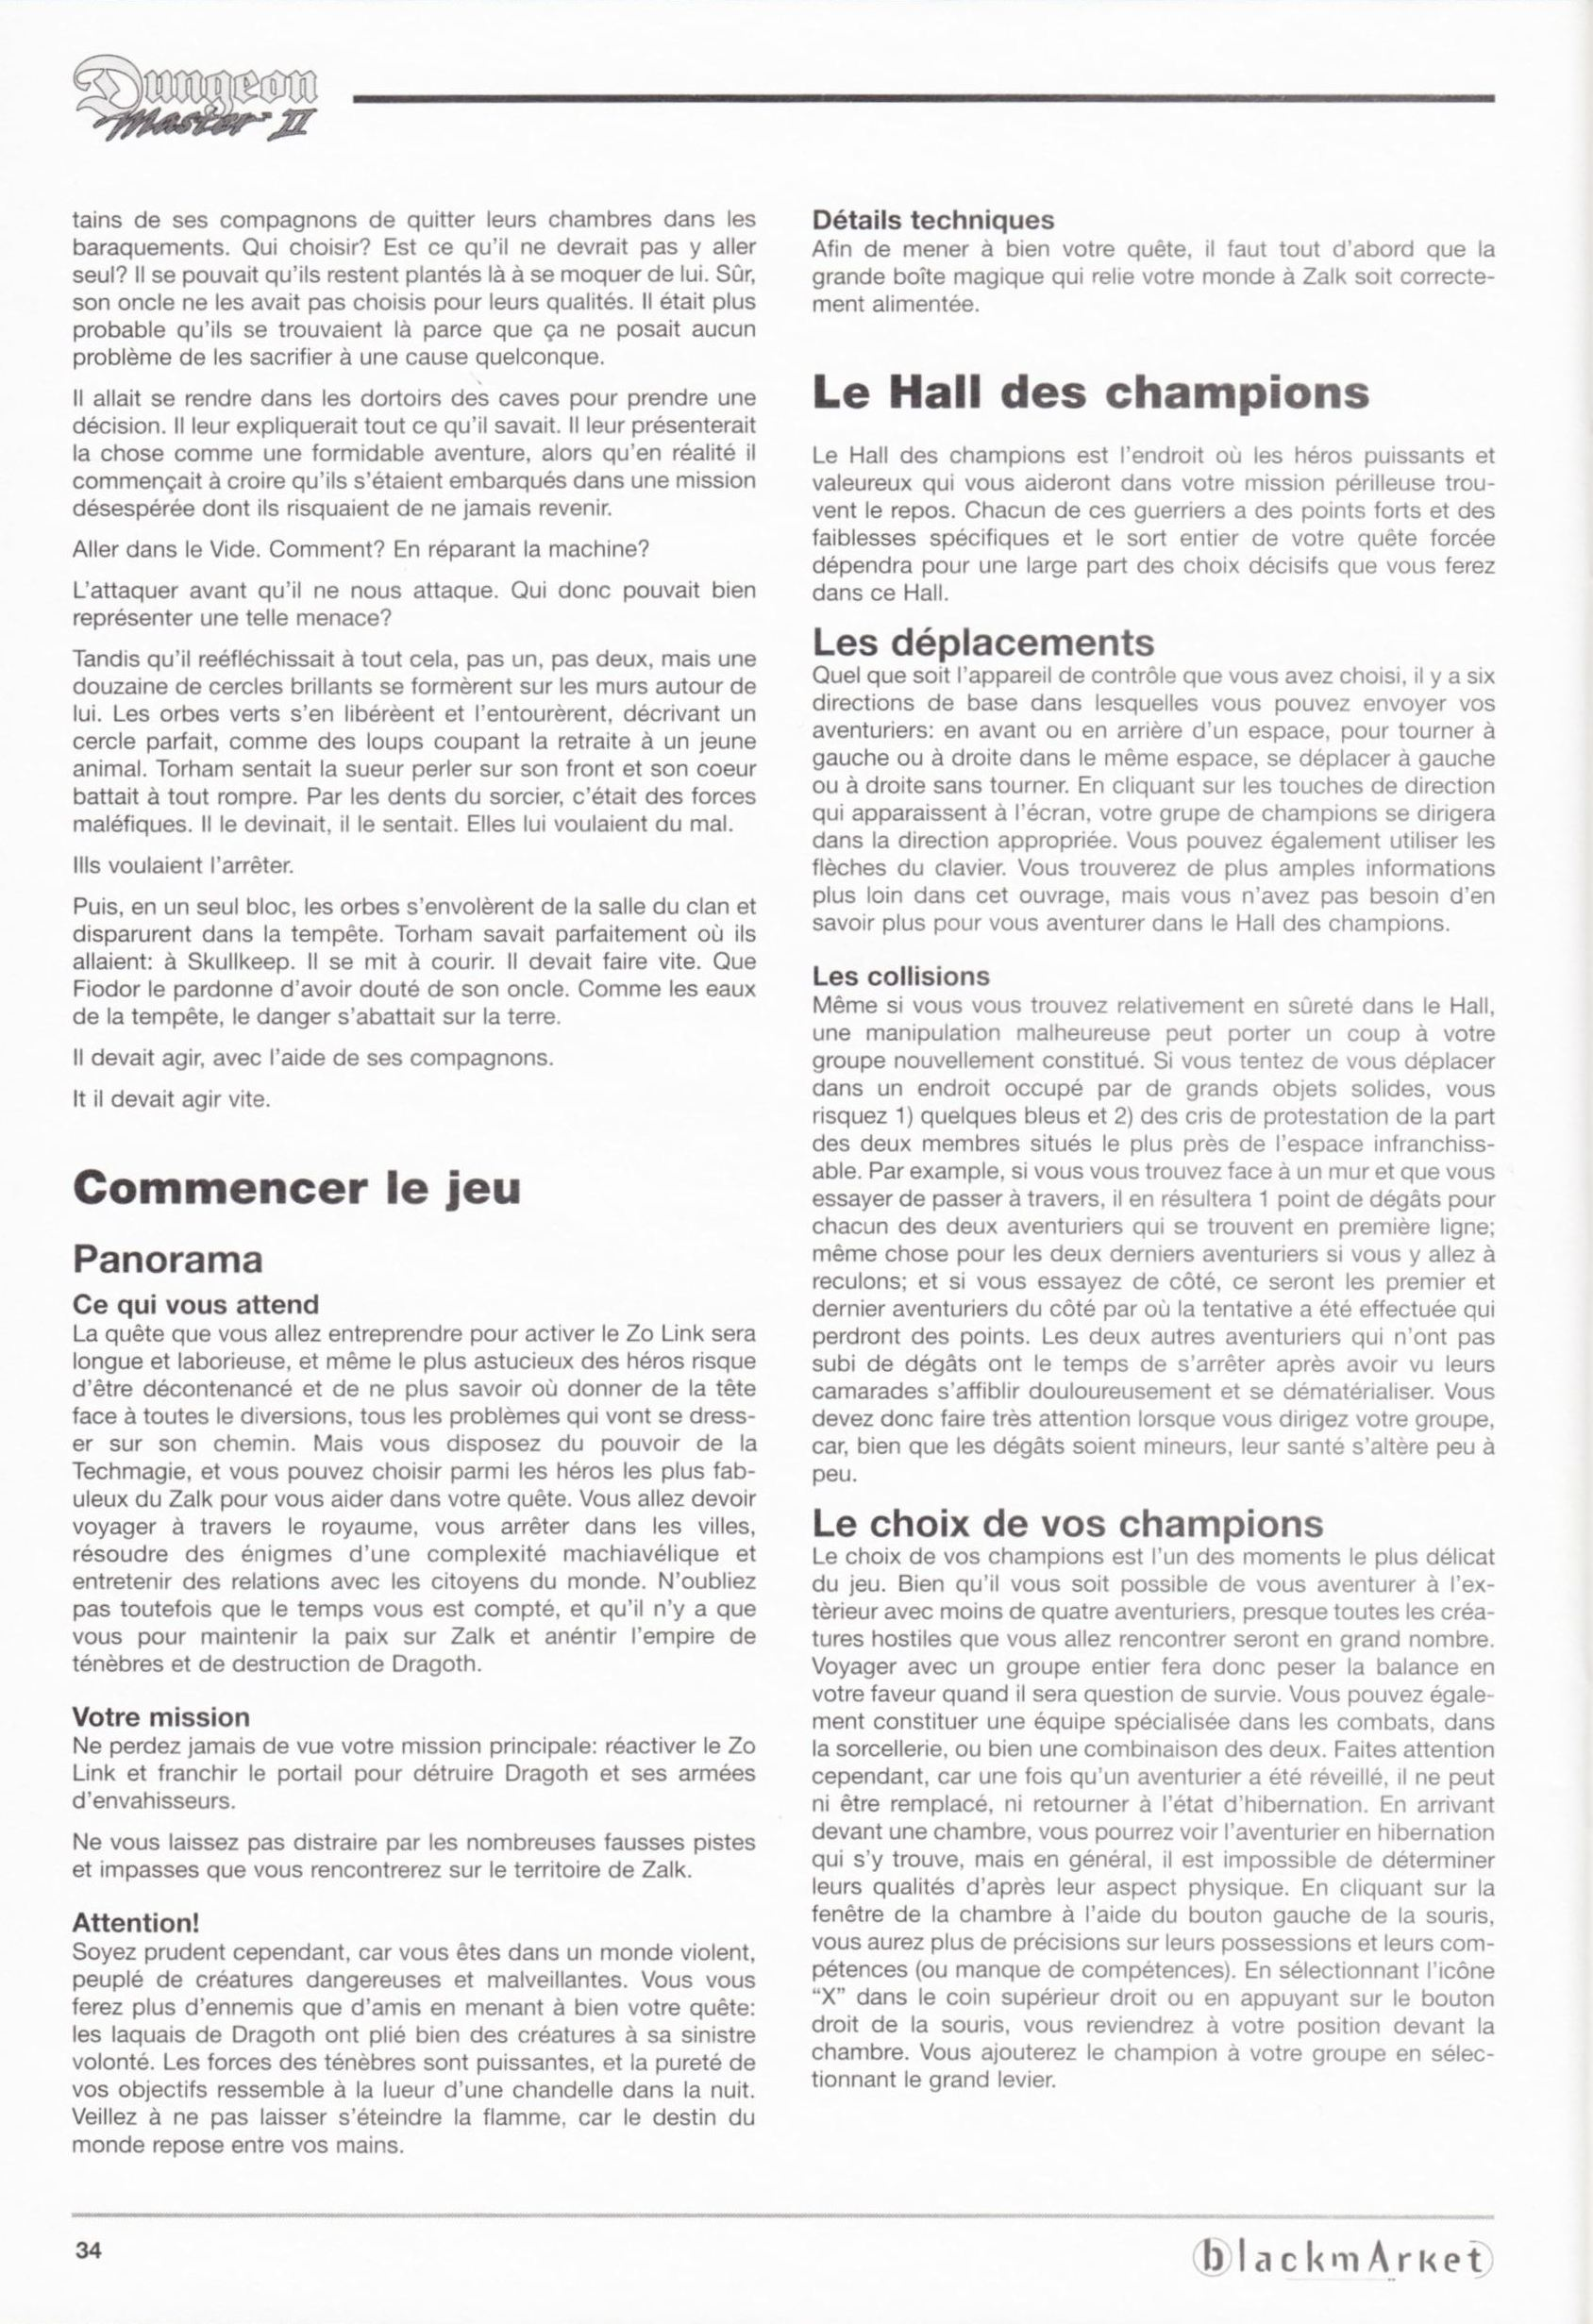 Game - Dungeon Master II - DE - PC - Blackmarket With Manual - Manual - Page 036 - Scan